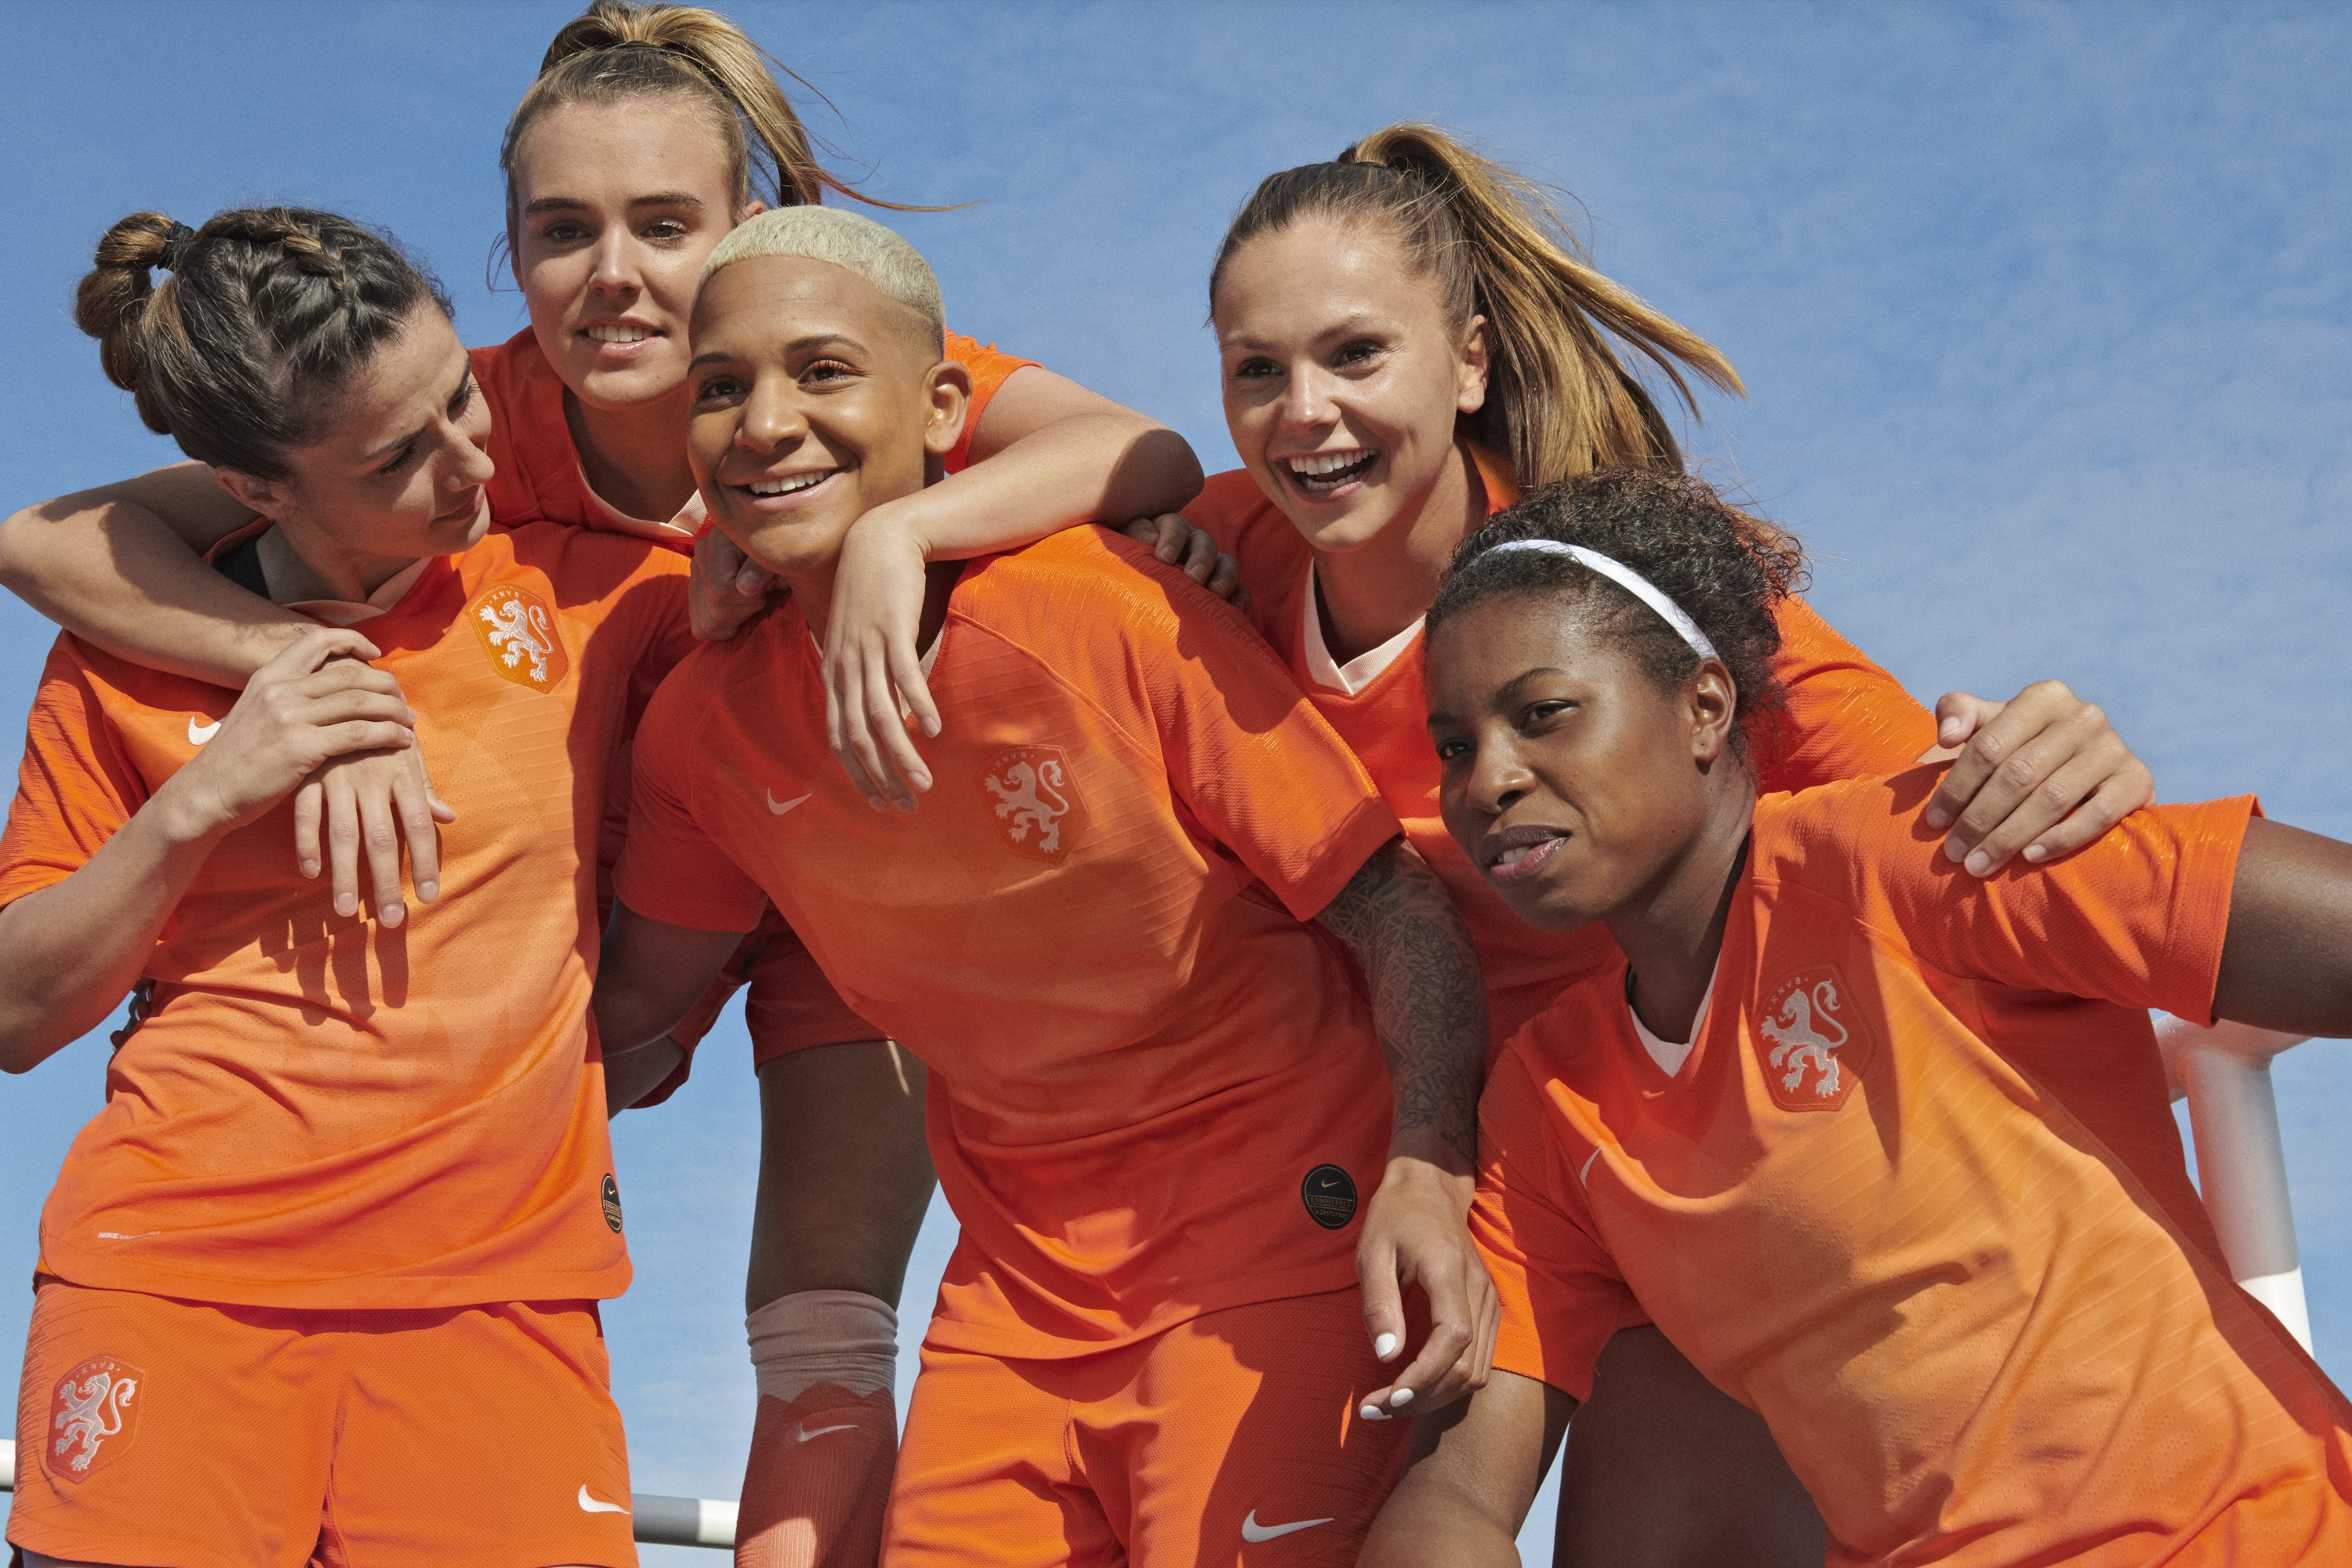 Why you should care about diverse role models – Football & Feminism